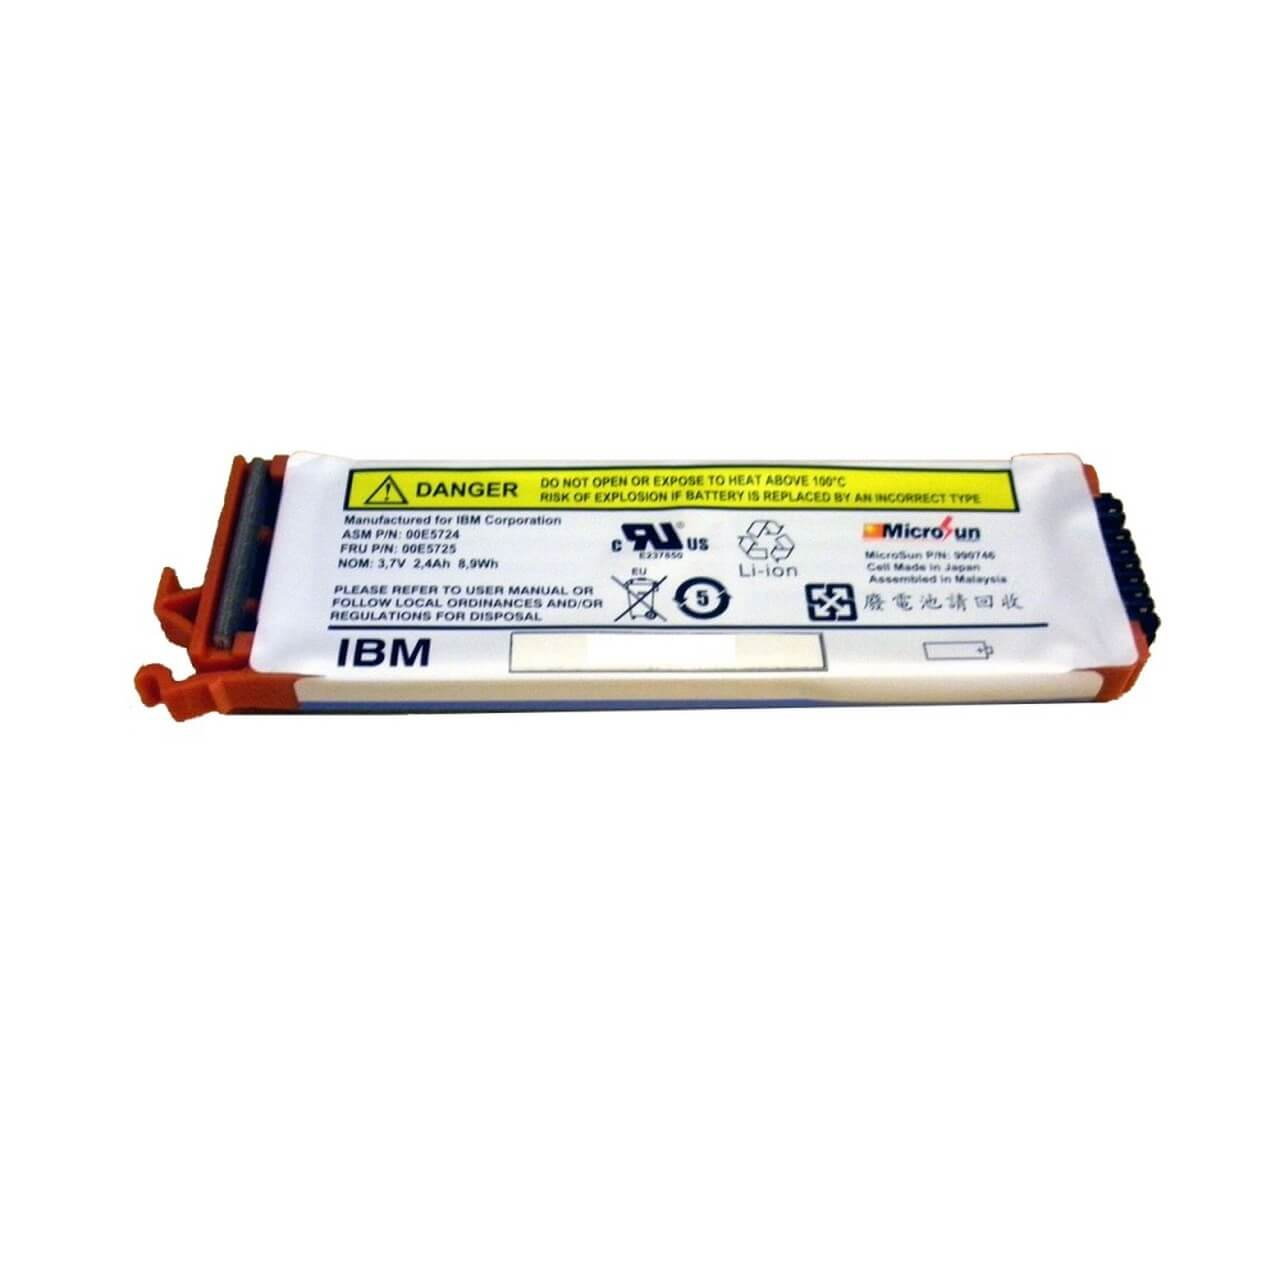 Buy & save on Lead Acid Battery Cells & Lithium Ion Batteries from your trusted partners at Flagship Technologies.